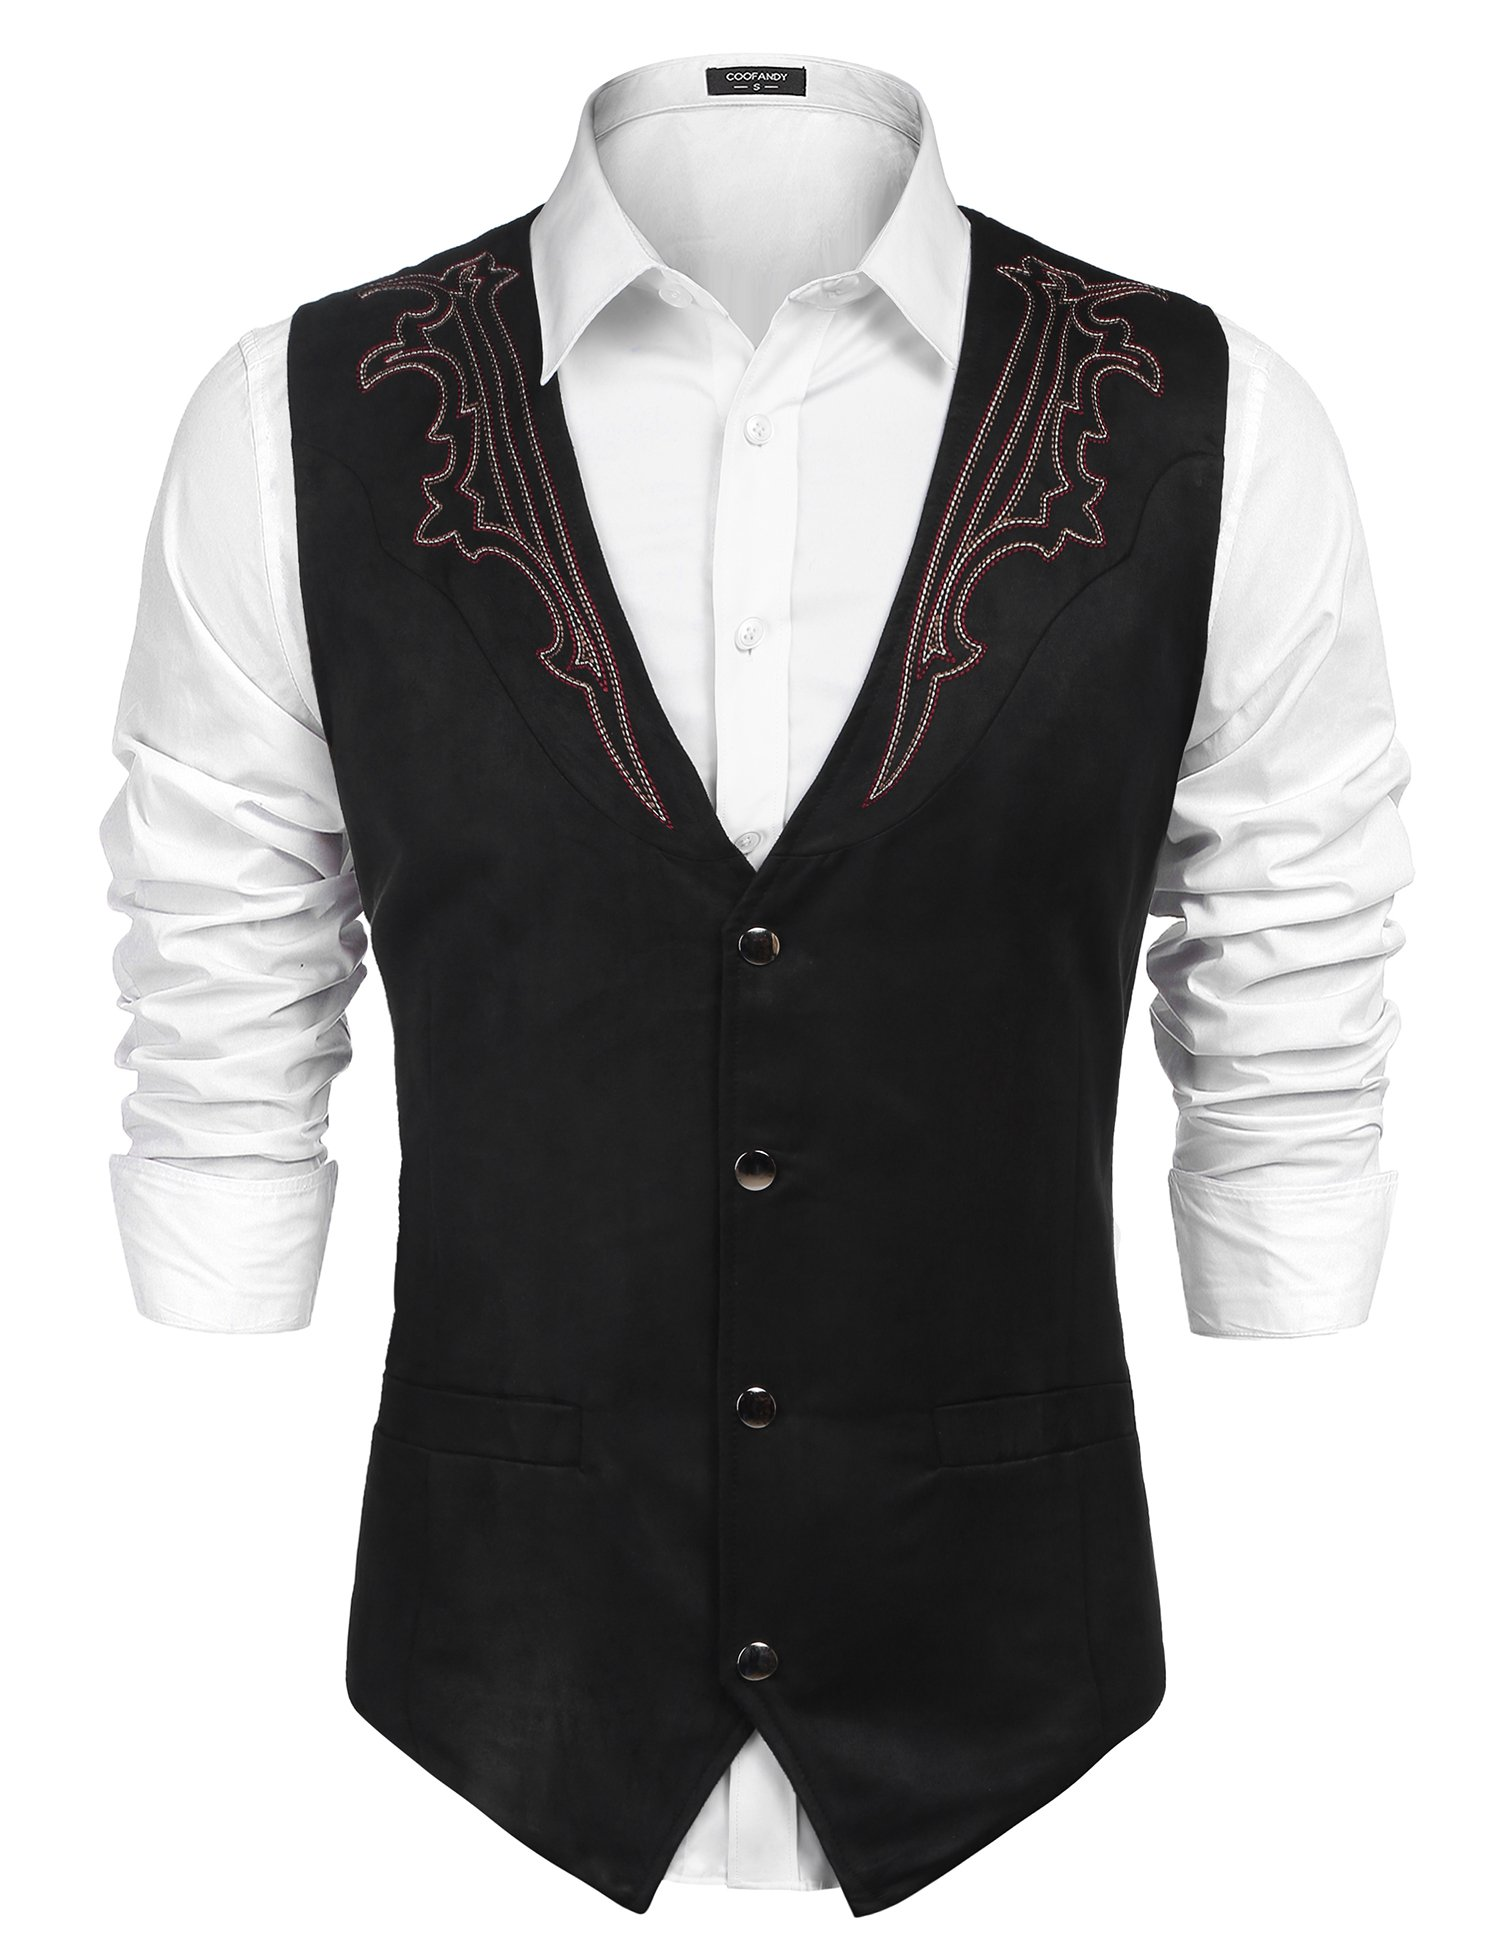 COOFANDY Mens Casual Suede Leather Vest Single-Breasted Vest Jacket,Black-4,XX-Large by COOFANDY